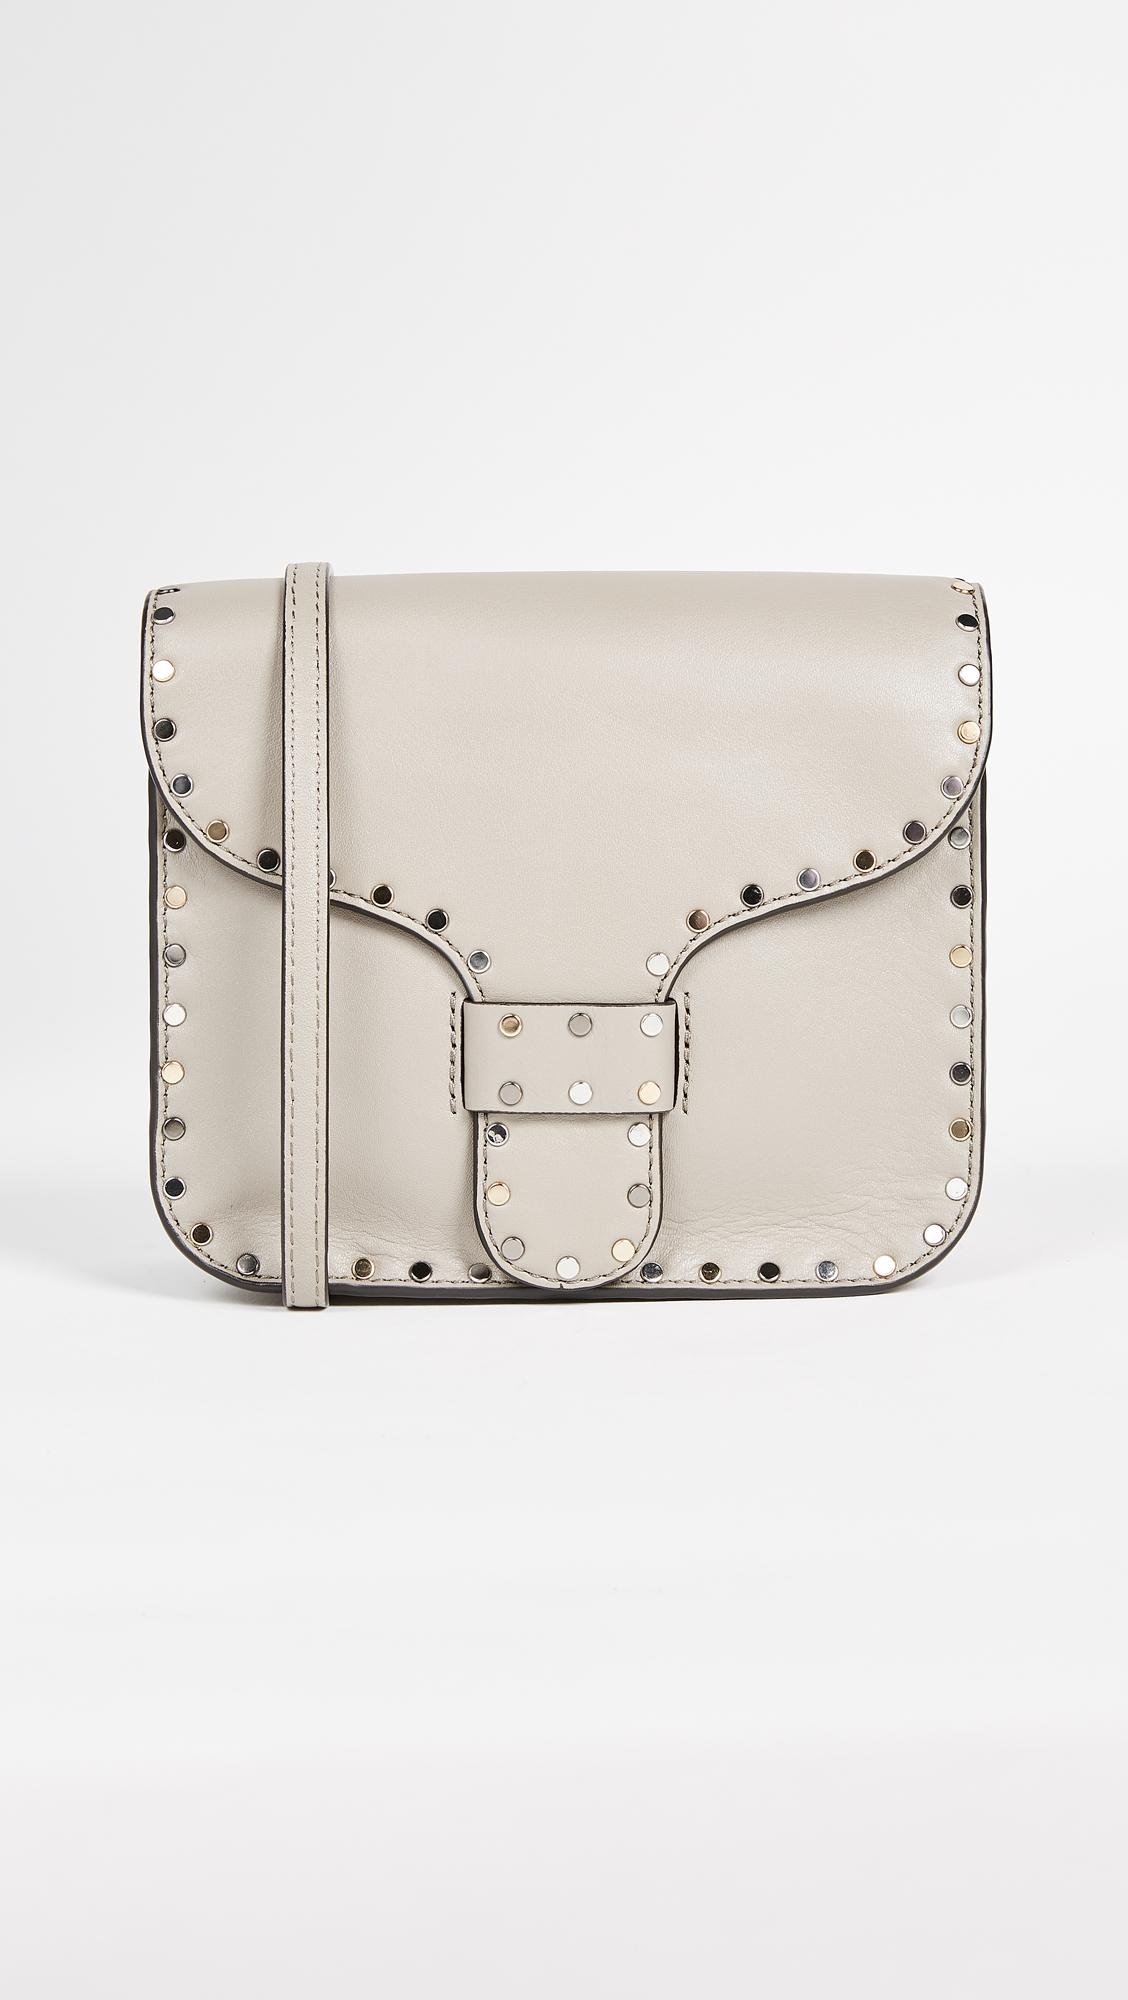 04bd8e1ed9 Gallery. Previously sold at: Shopbop · Women's Leather Messenger Bags  Women's Rebecca Minkoff ...